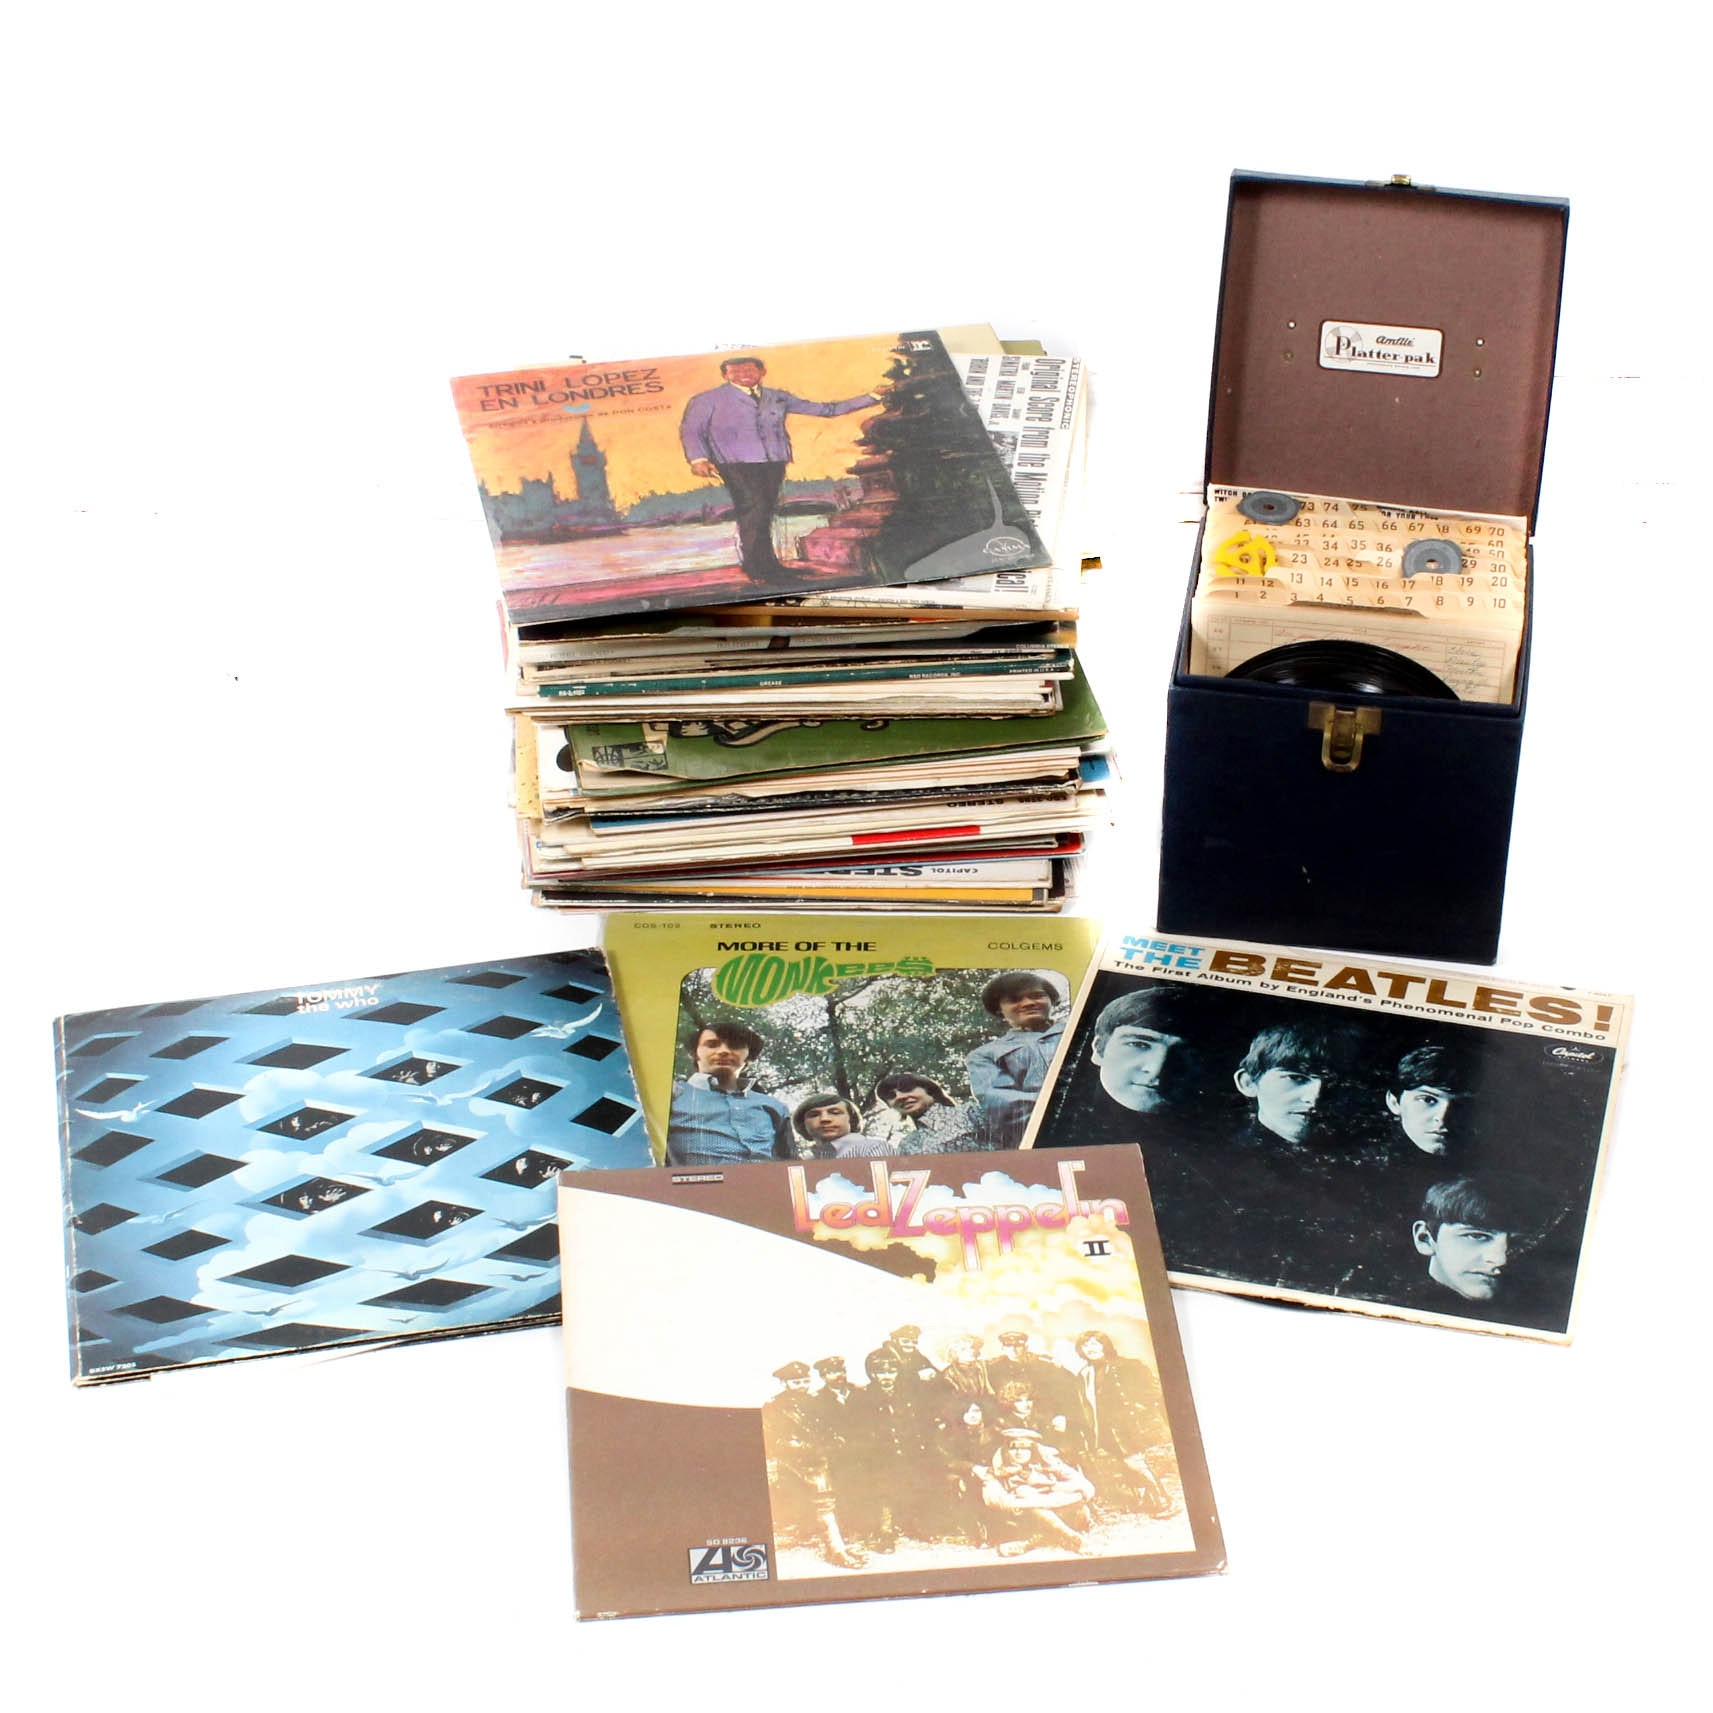 Vintage Vinyl Records Featuring The Who, Led Zeppelin, The Beatles and More